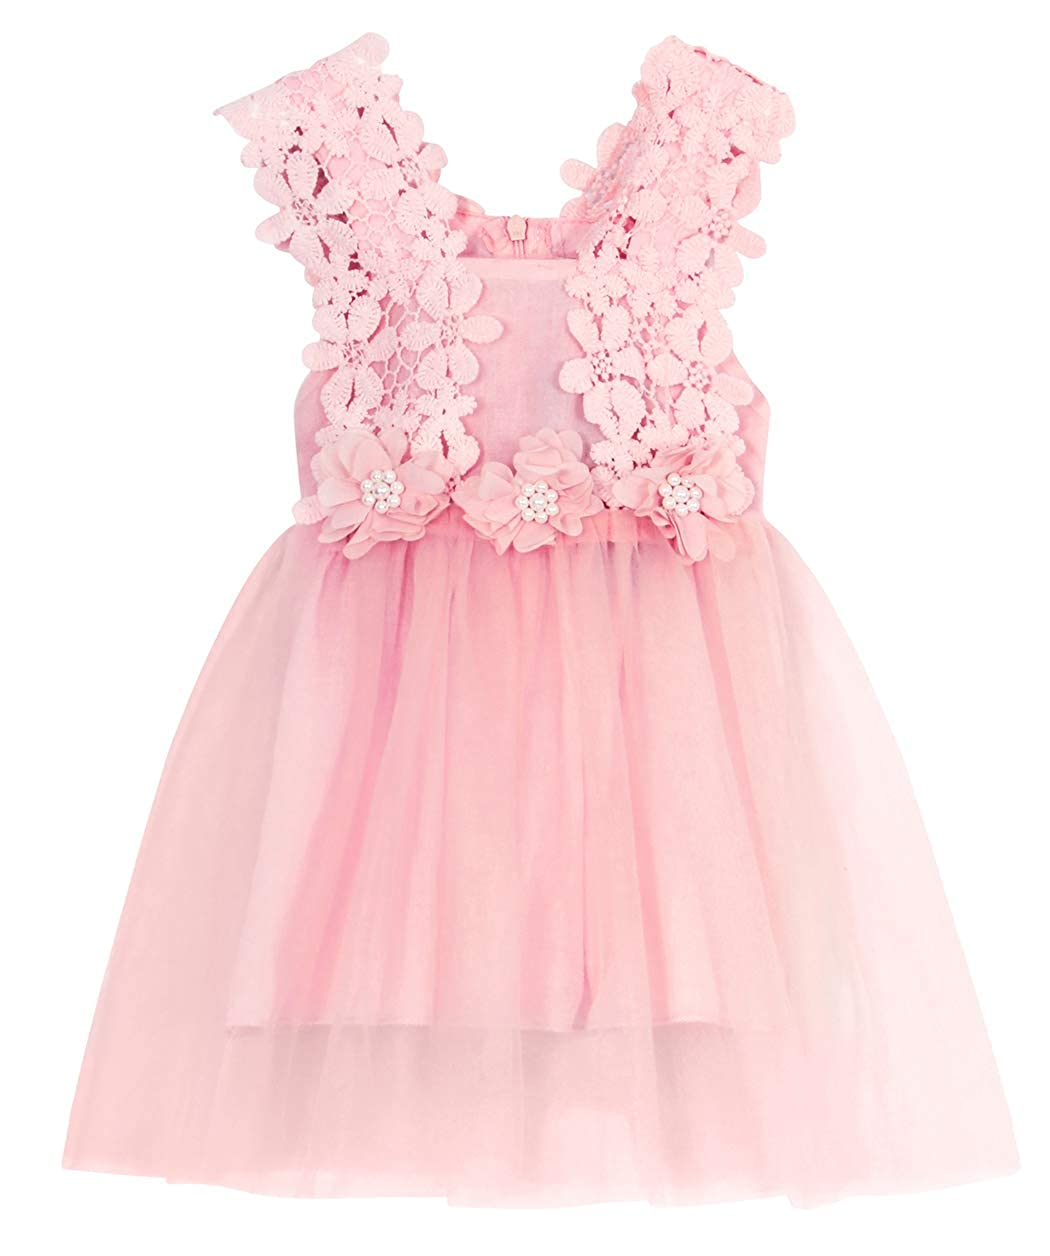 MetCuento Baby Flower Girl Dresses Lace Wedding Birthday Party Toddler Formal Dress Pink 3-4 Years